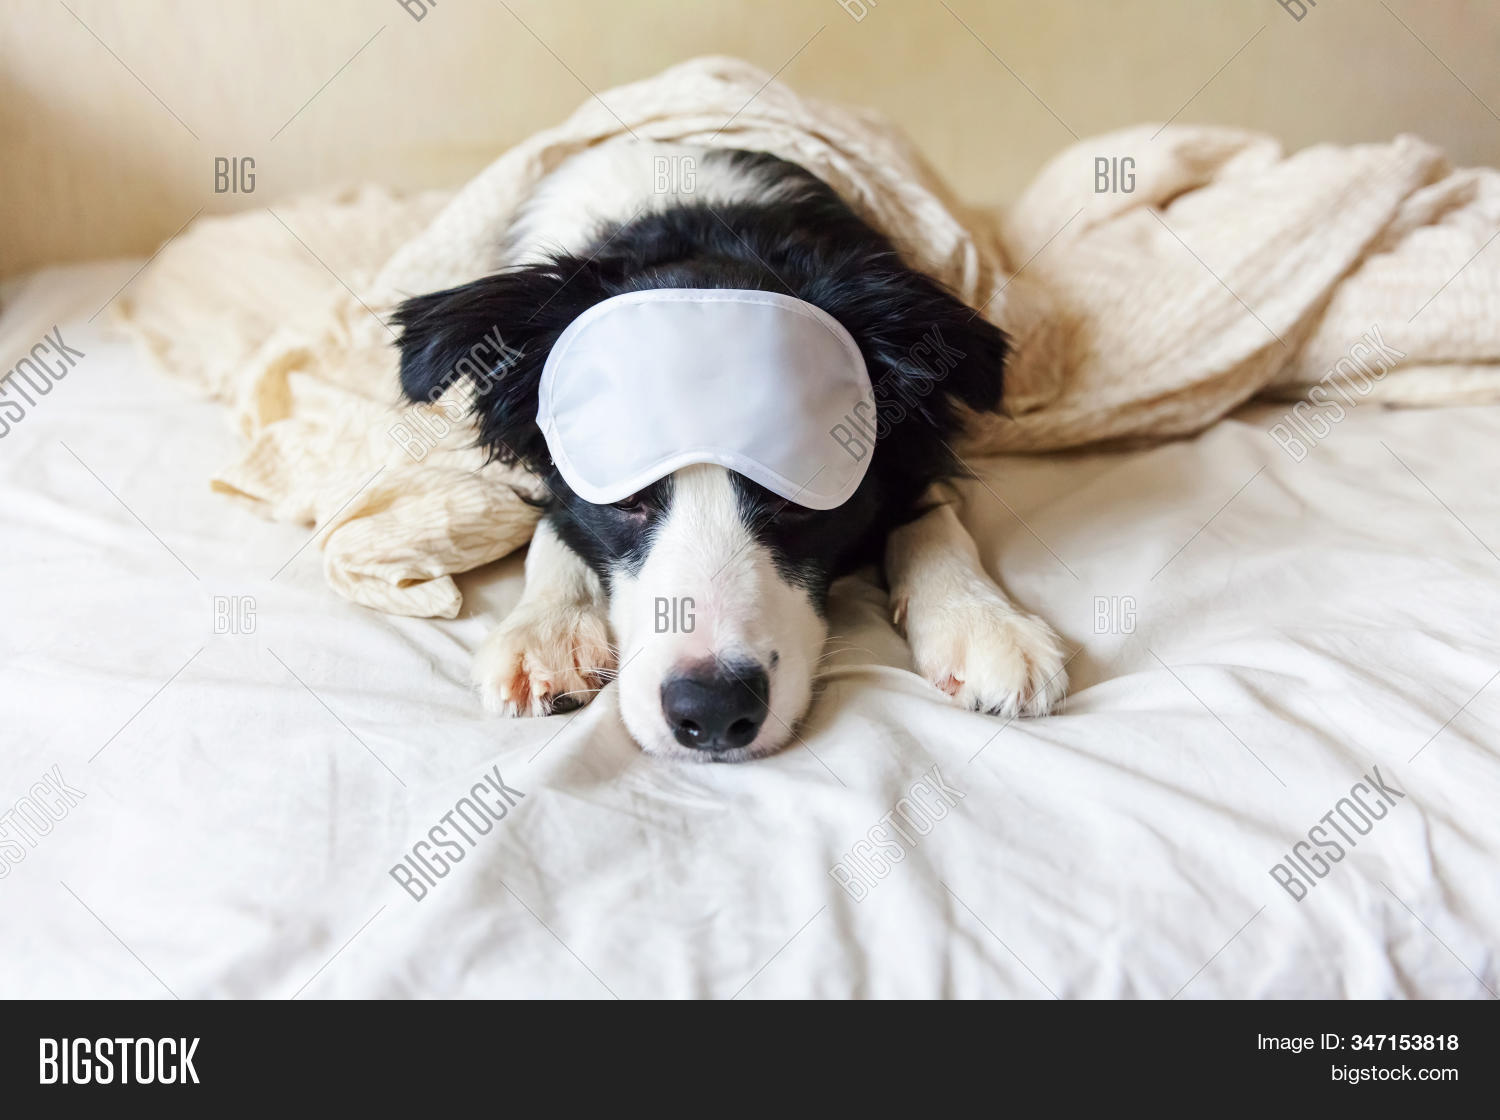 Do Not Disturb Me Let Me Sleep. Funny Puppy Border Collie With Sleeping Eye Mask Lay On Pillow Blank